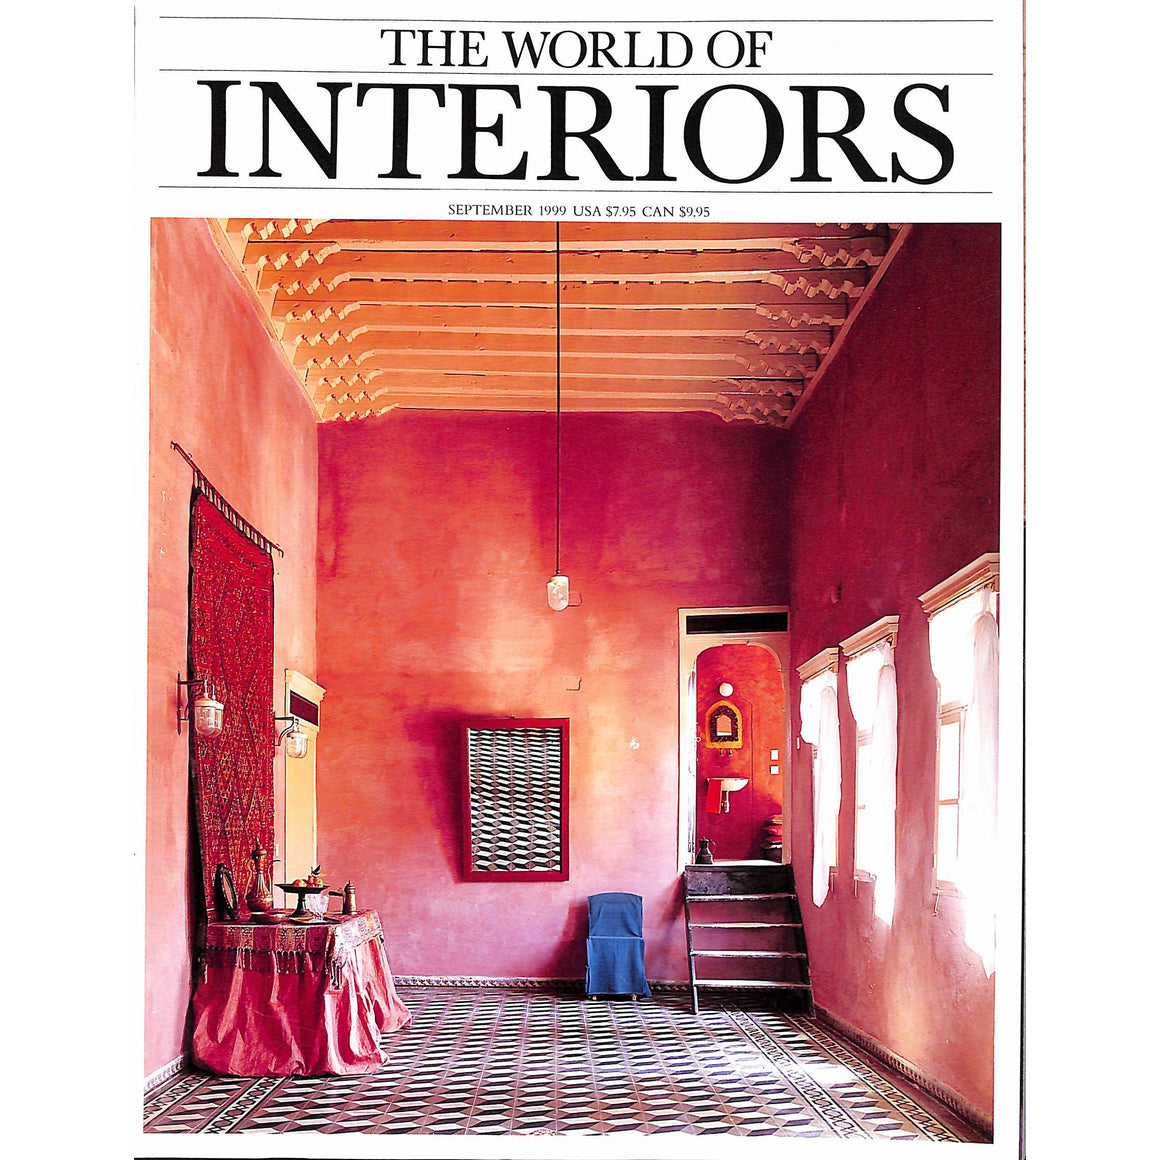 The World of Interiors September 1999